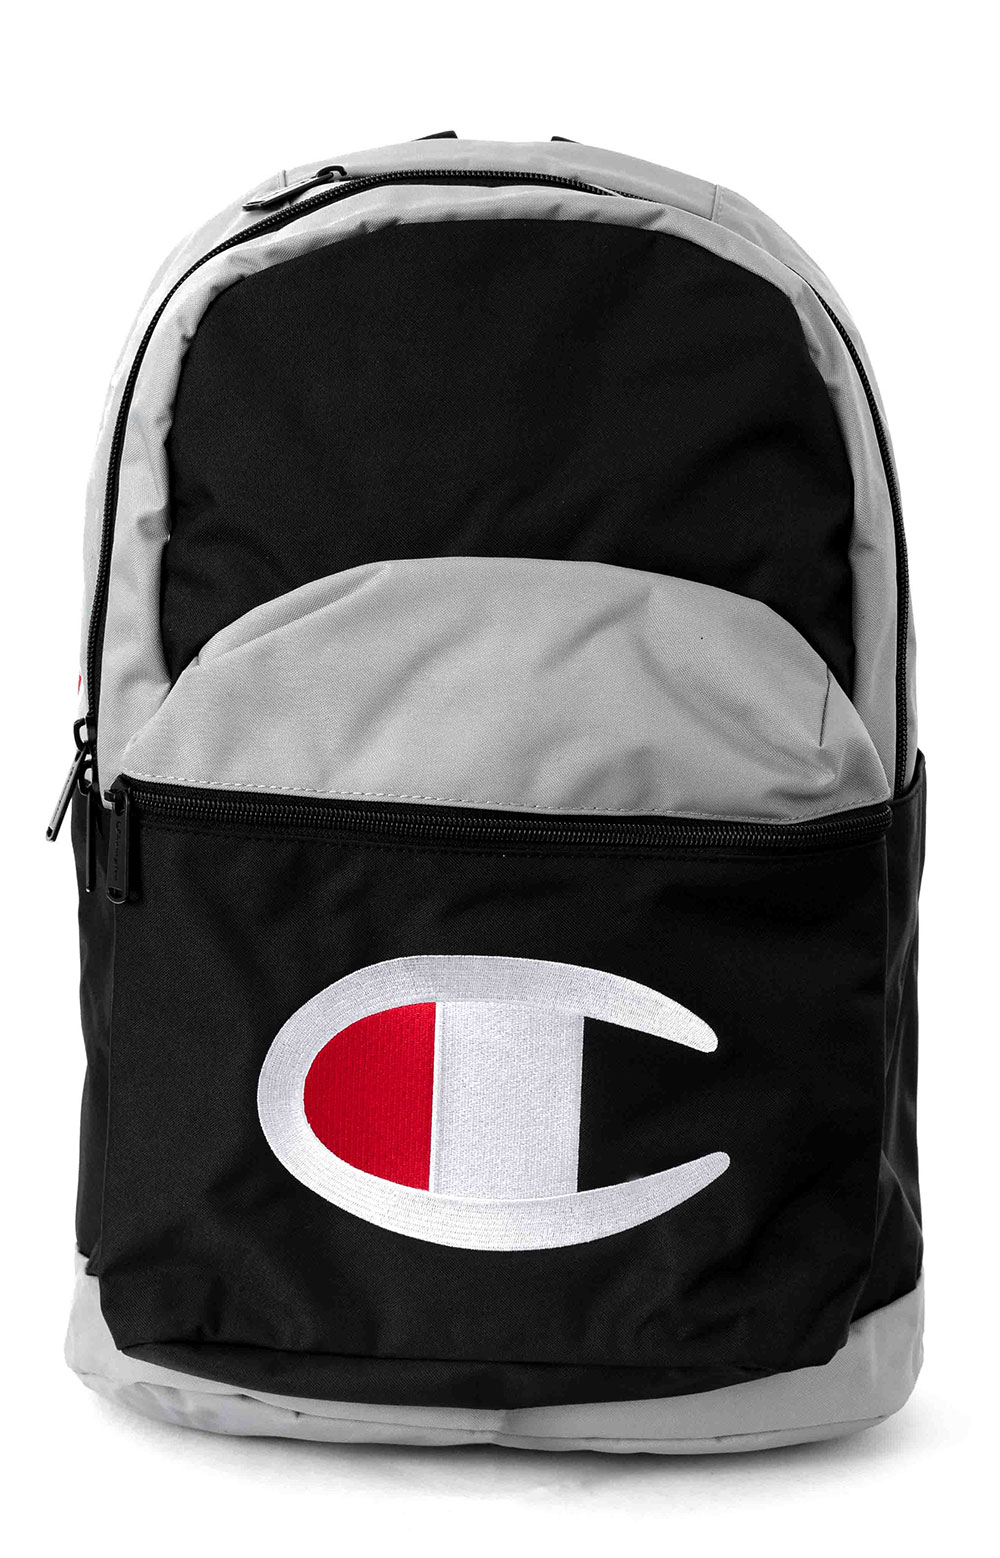 (CH1094) Champion Color Block Backpack - Black/White/Grey